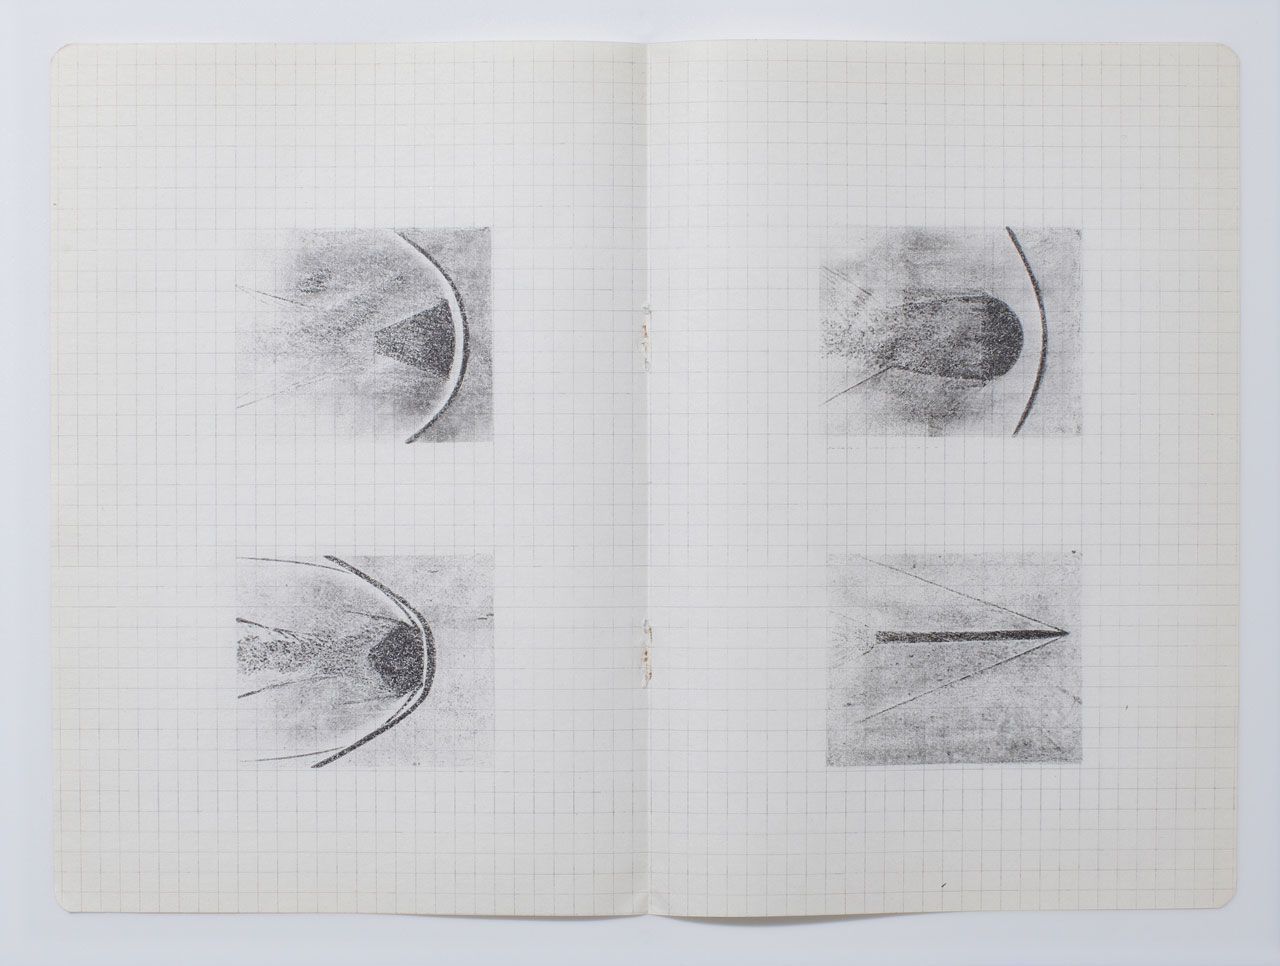 Hajra Waheed, KH-21, Notes 6/32, 2014, Xylene Transfer & Graphite on Paper. Image courtesy the artist.